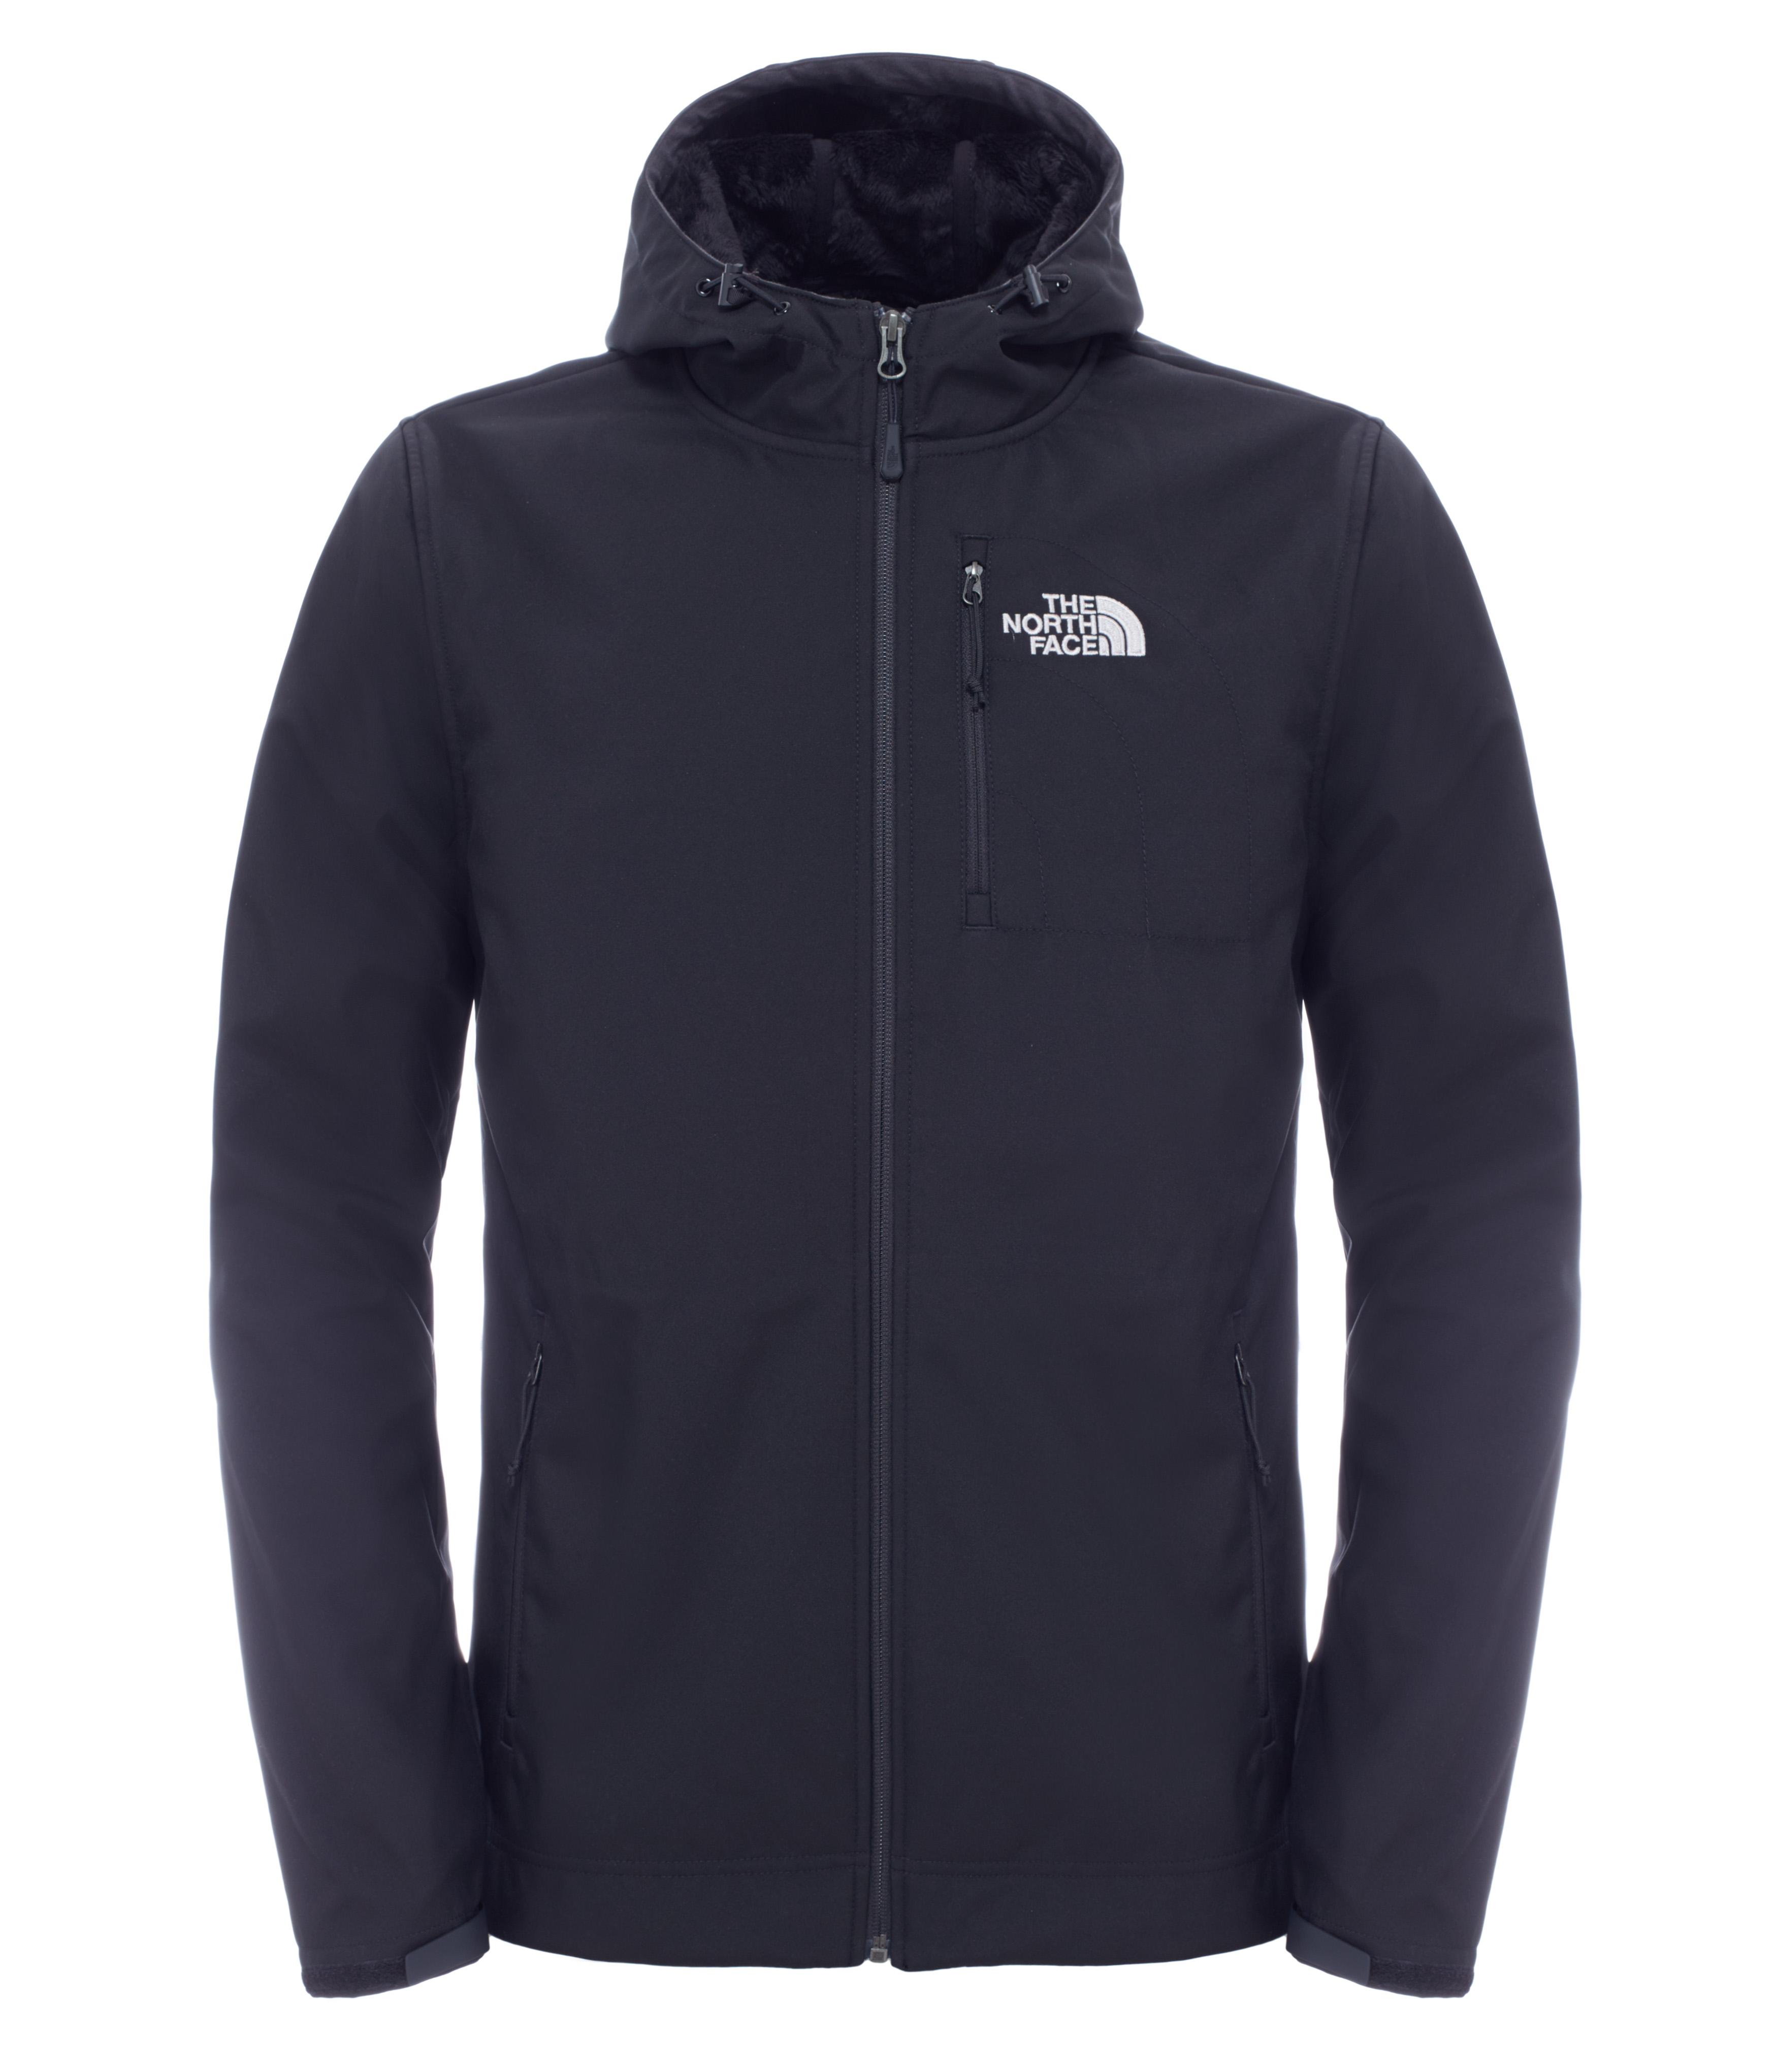 The North Face Durango Hoodie | Jackets